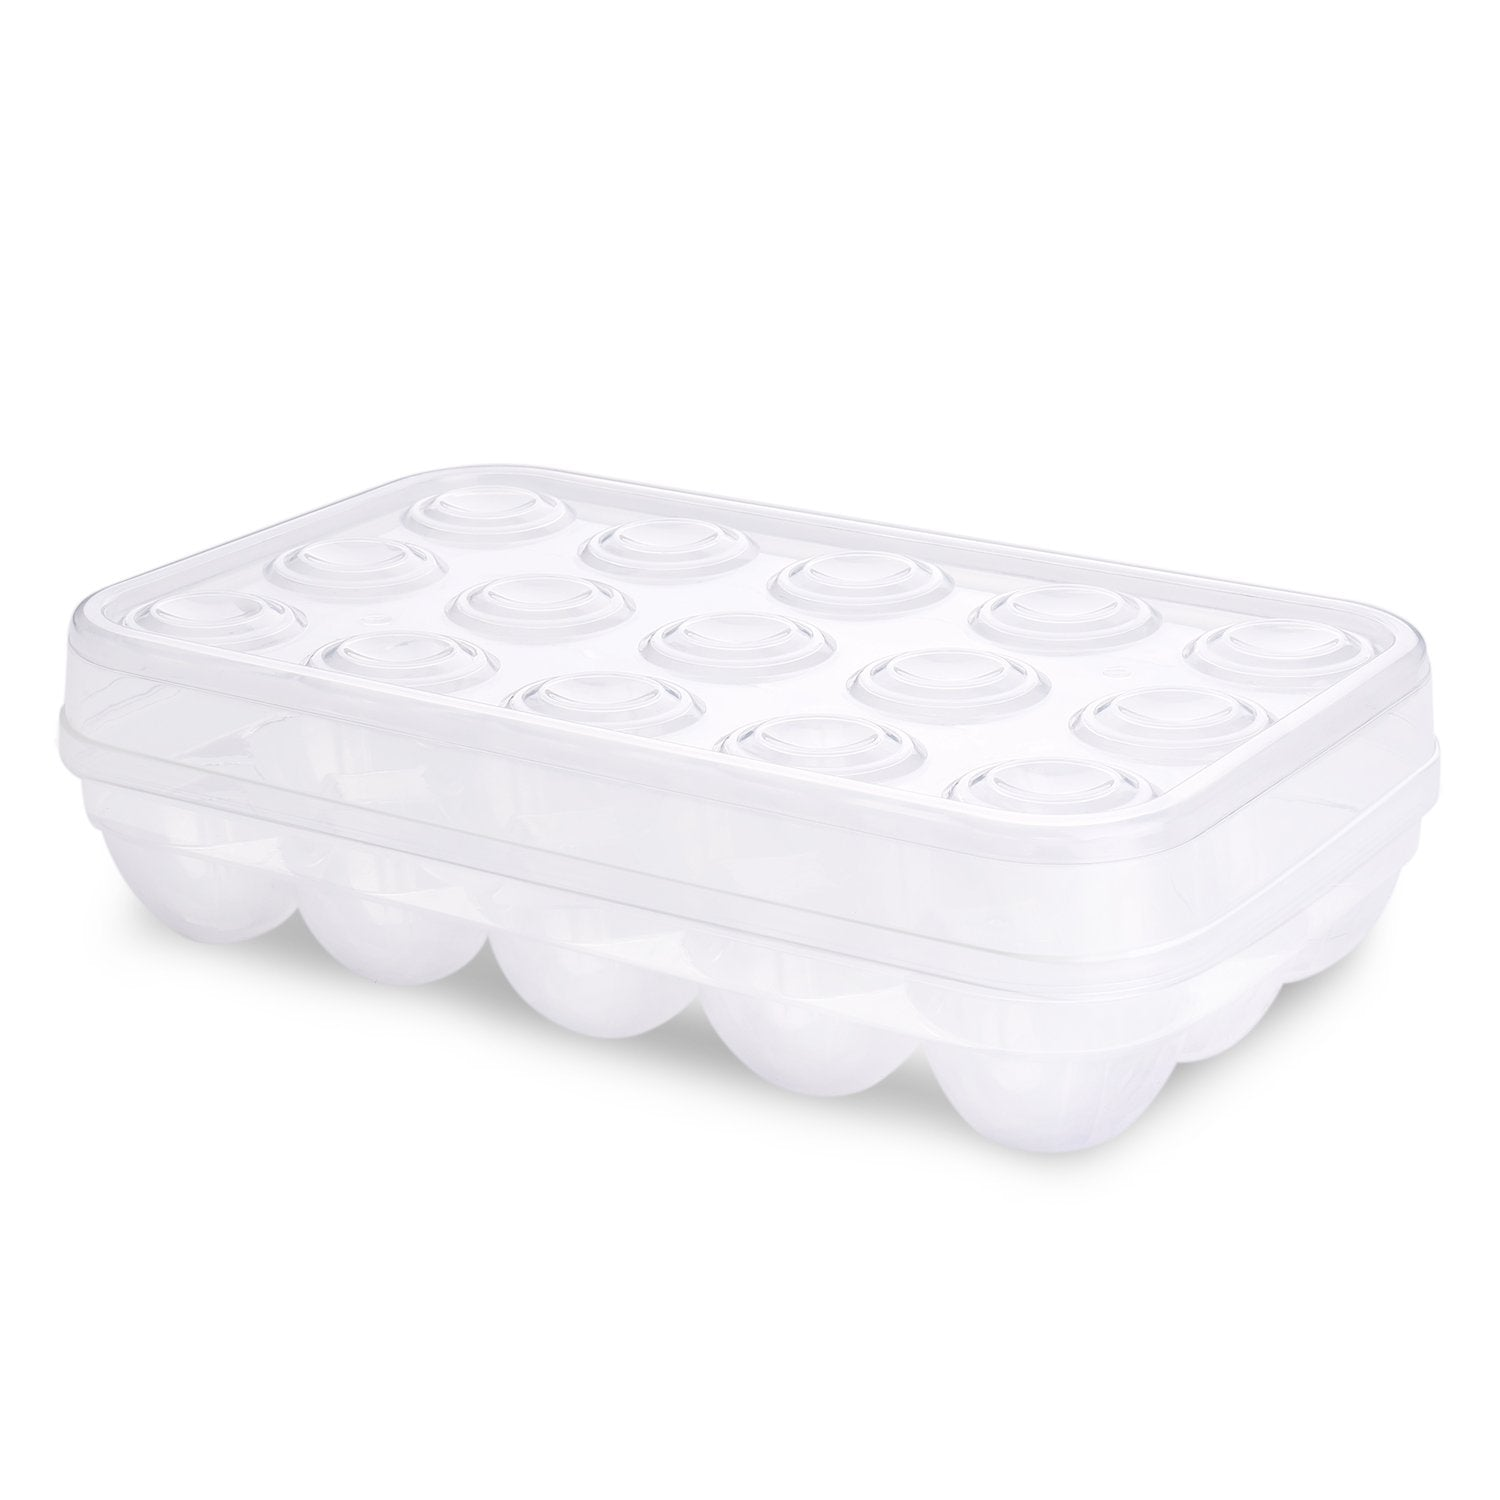 Flexzion Covered 15 Eggs Holder - Plastic Eggs Tray Container Dispenser Case Carton Box Carrier Stackable Storage Organizer Storer Keeper with Clear Lid Large Capacity for Refrigerator Fridge Home